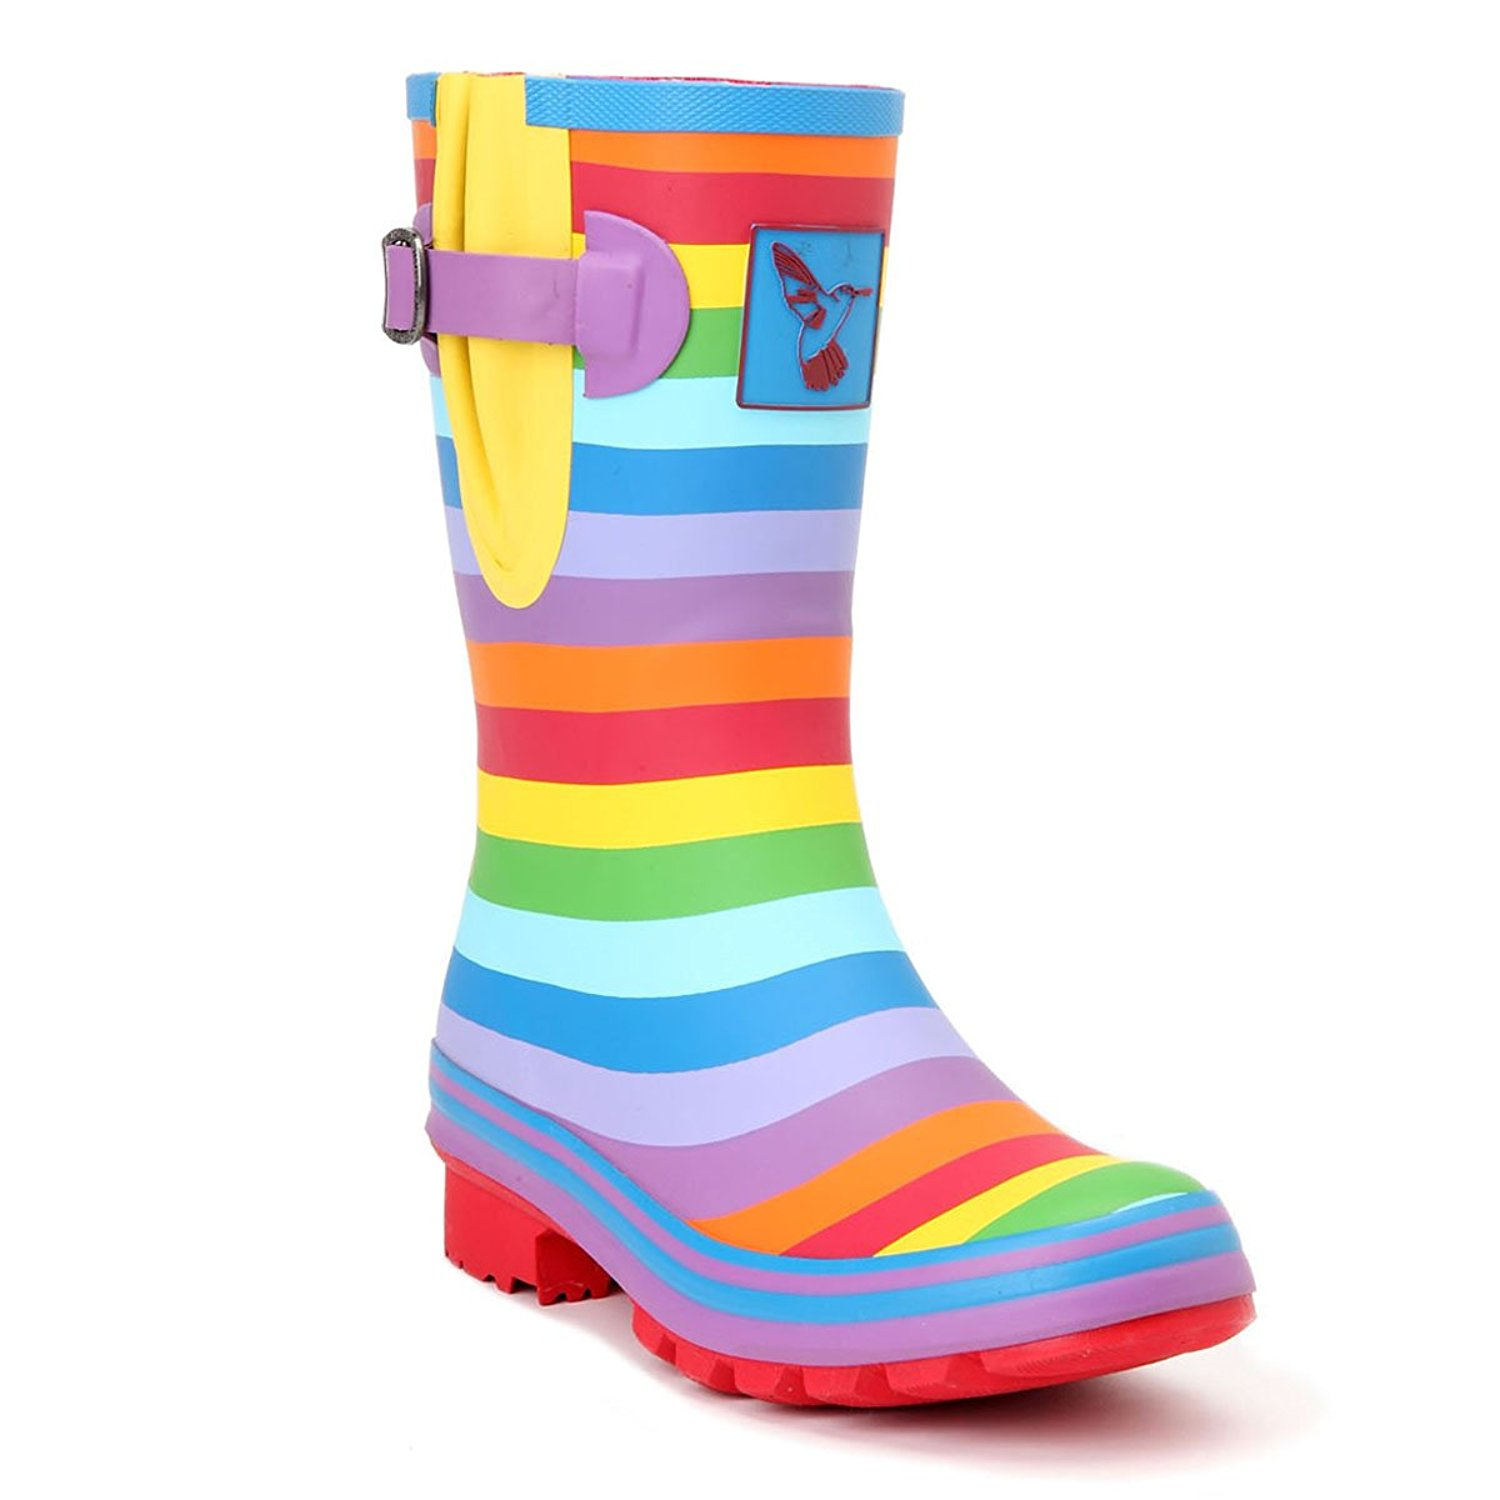 03166973ead Get Quotations · Evercreatures Women s Rain Boot Waterproof Mid-Calf Boots  Rainbow Stripes Cute Animal Print Polka Dot